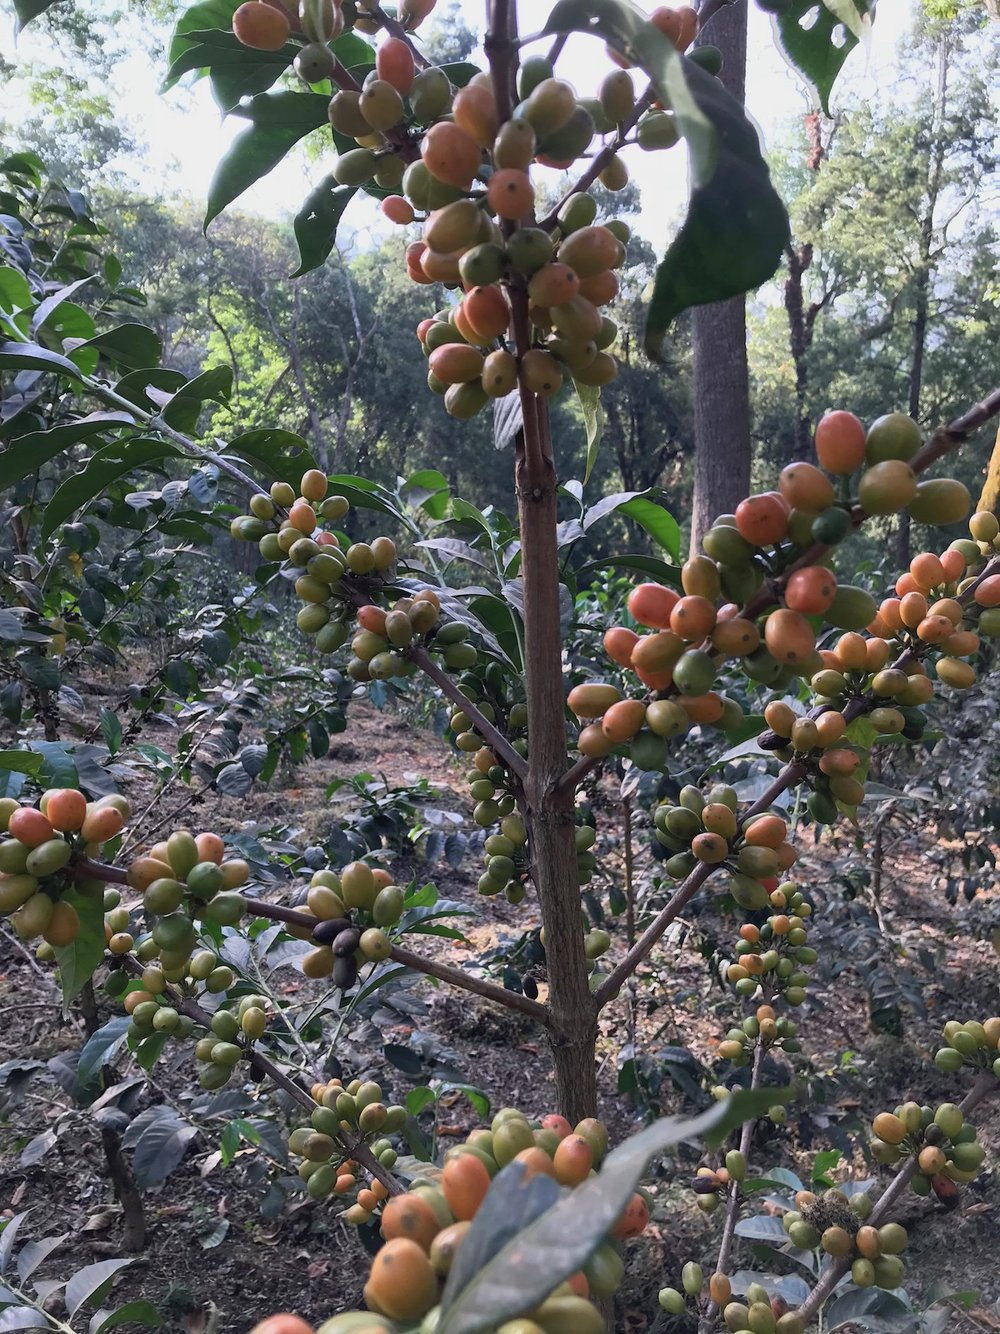 The biodiversity of coffee in Ethiopia is astounding